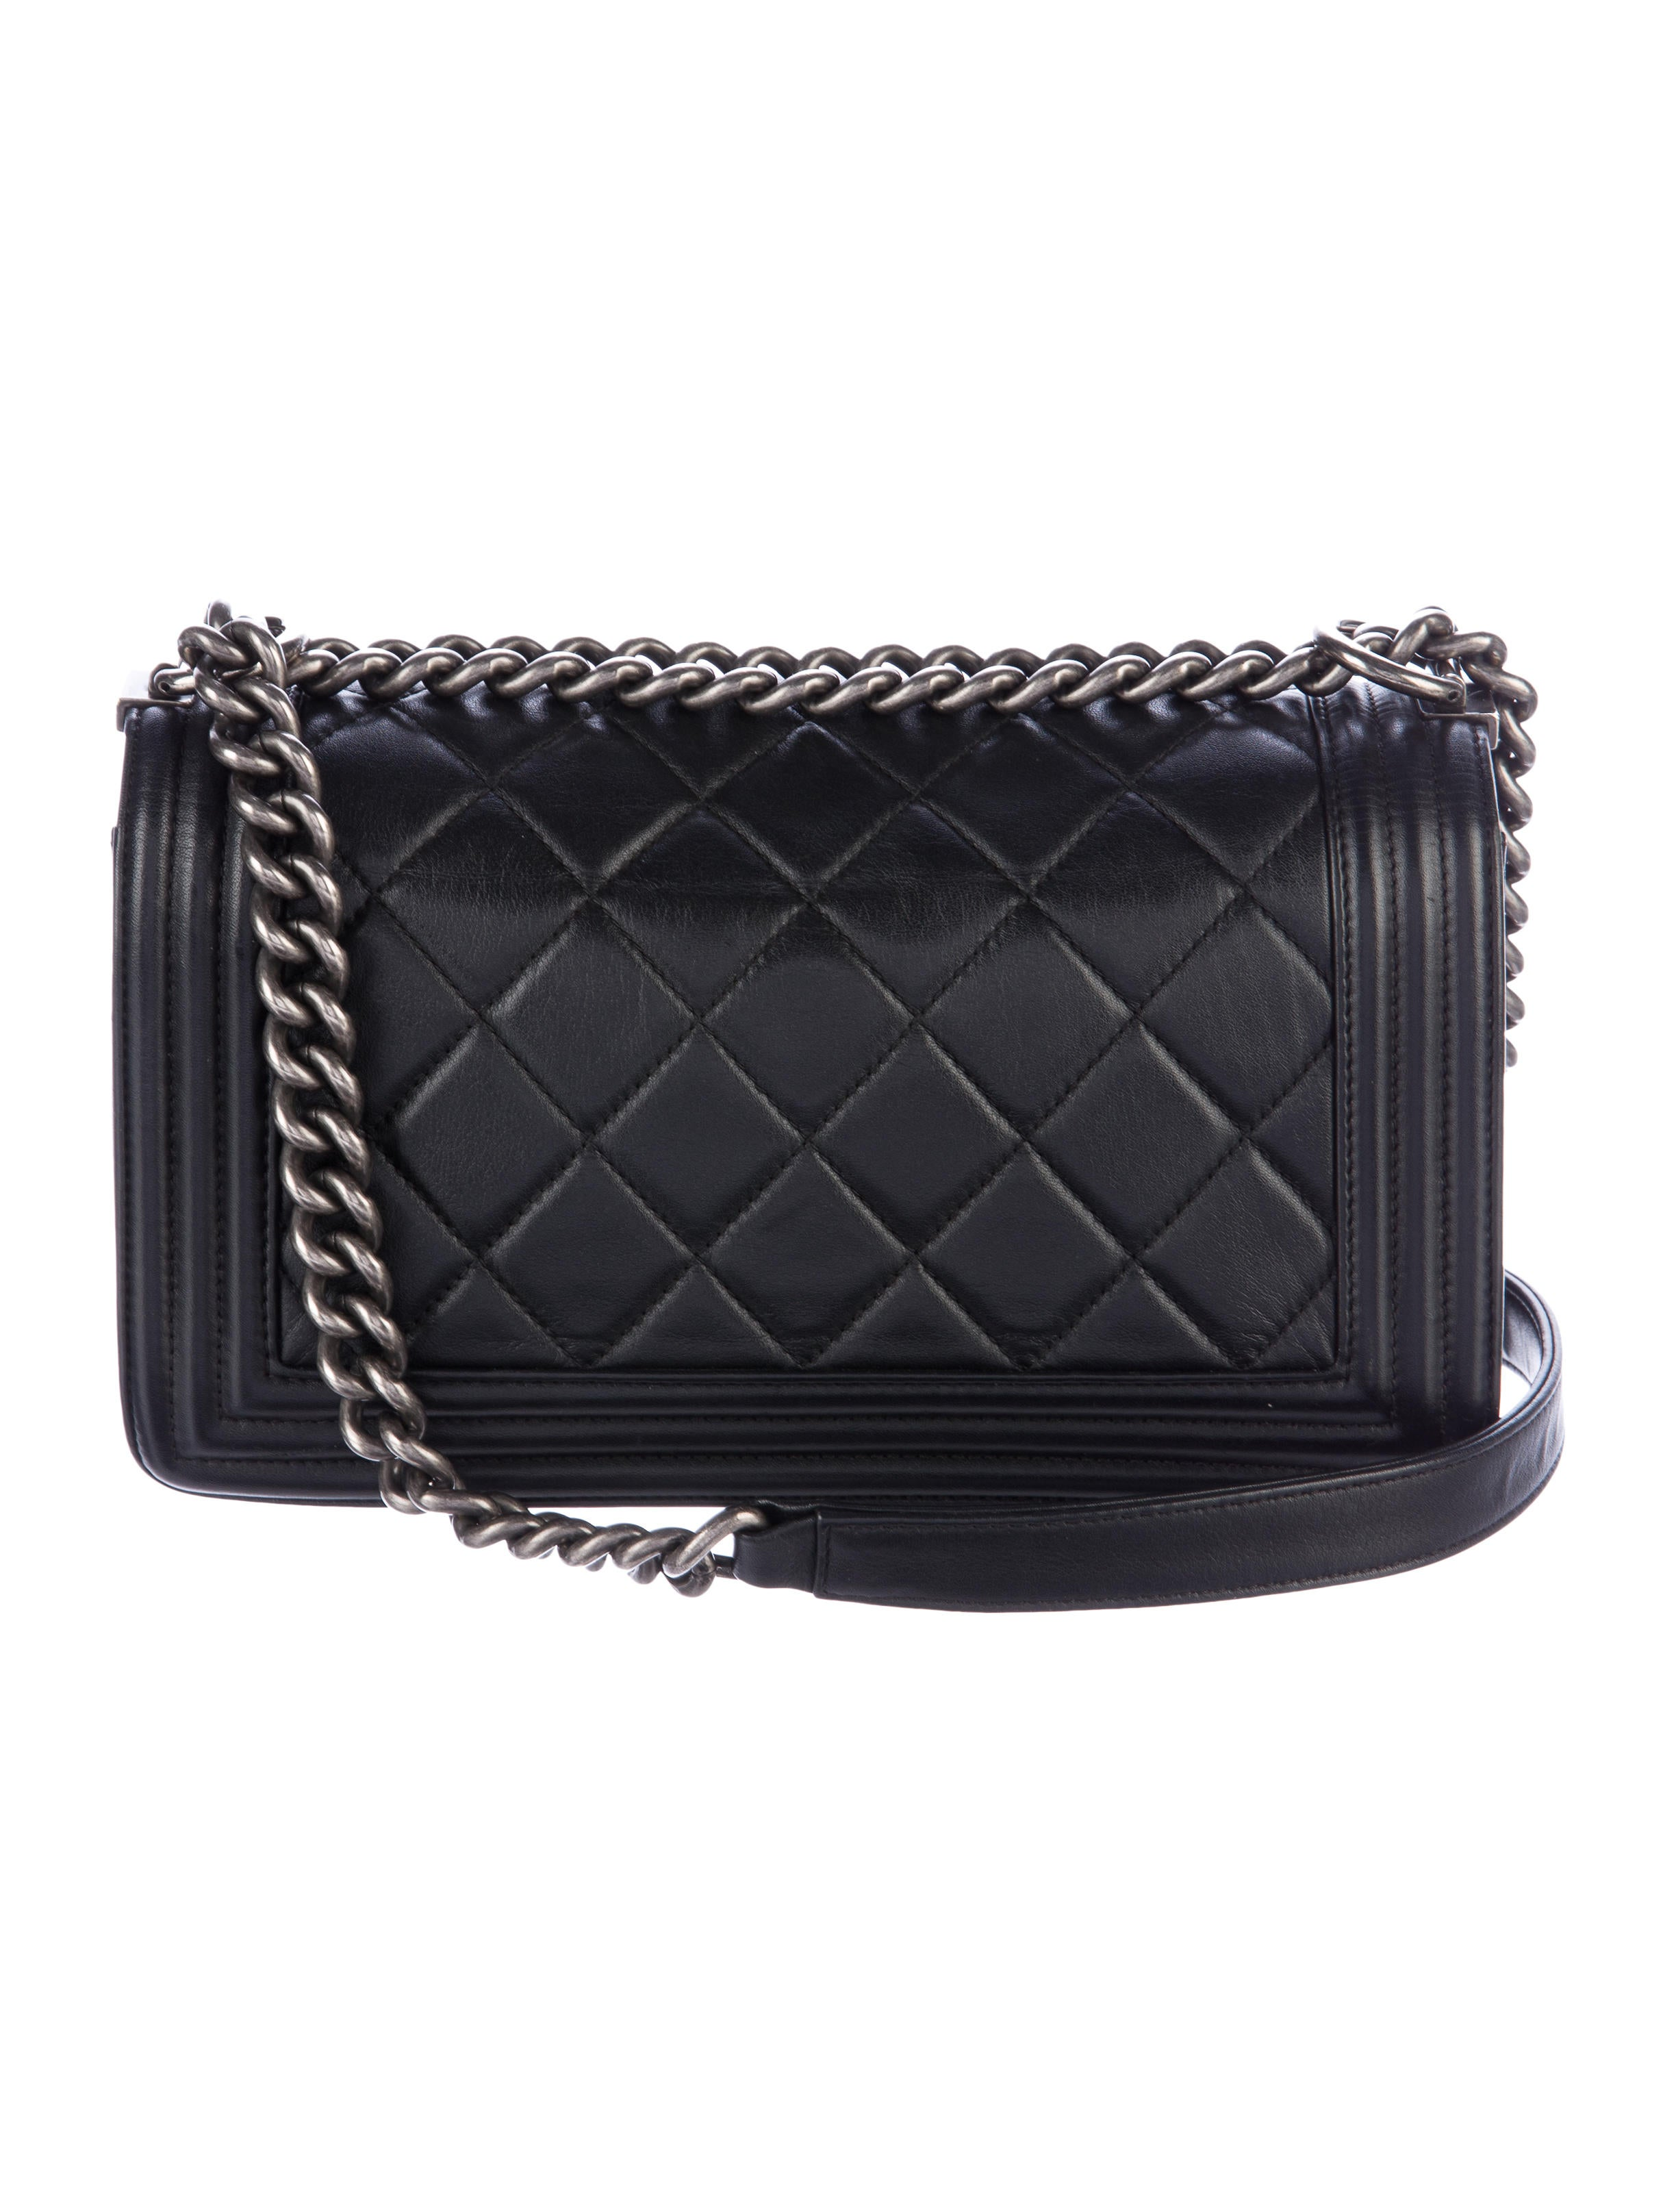 749c250f87ee Chanel Boy Bag Or Flap Bag | Stanford Center for Opportunity Policy ...